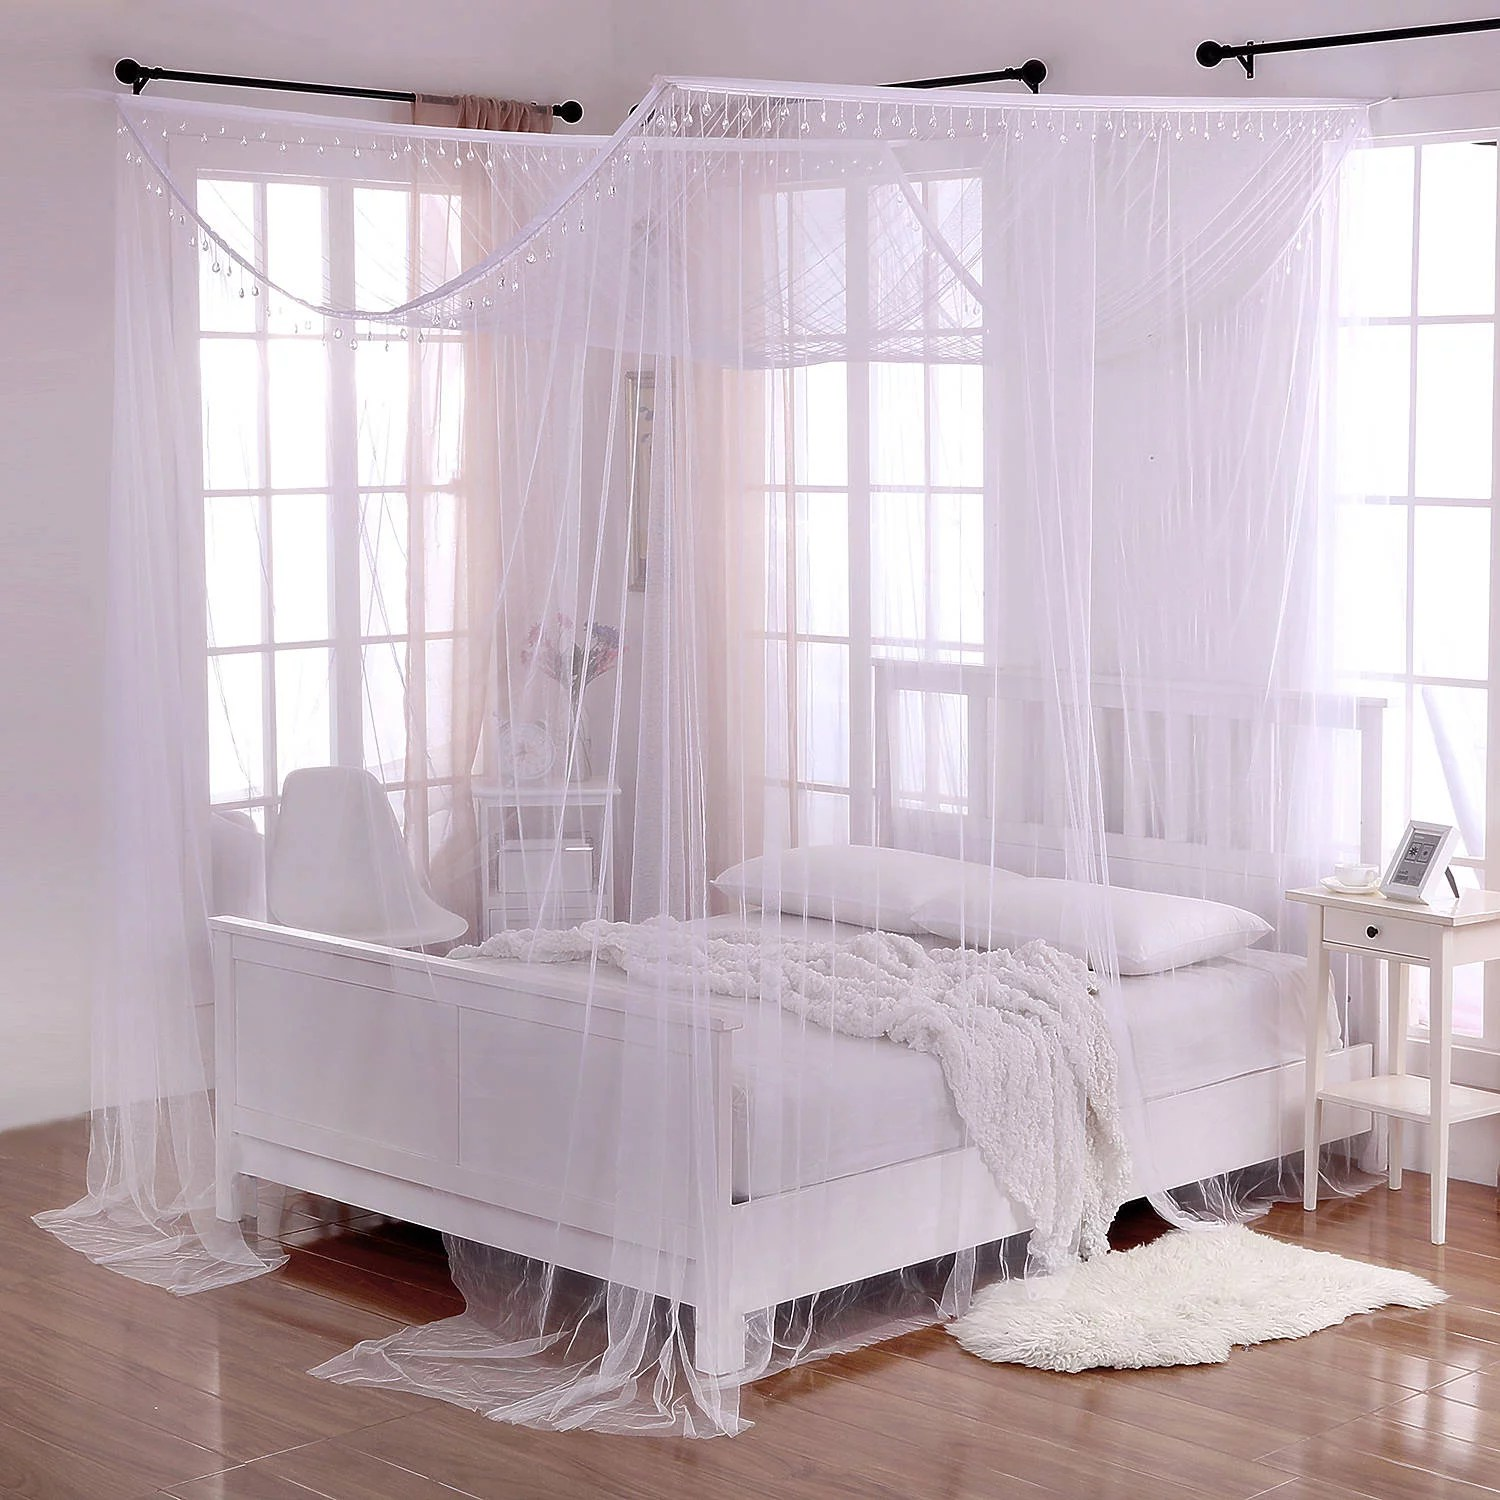 4 Poster Canopy King Bed White Crystal Palace 4 Post Bed Sheer Mosquito Net Panel Canopy